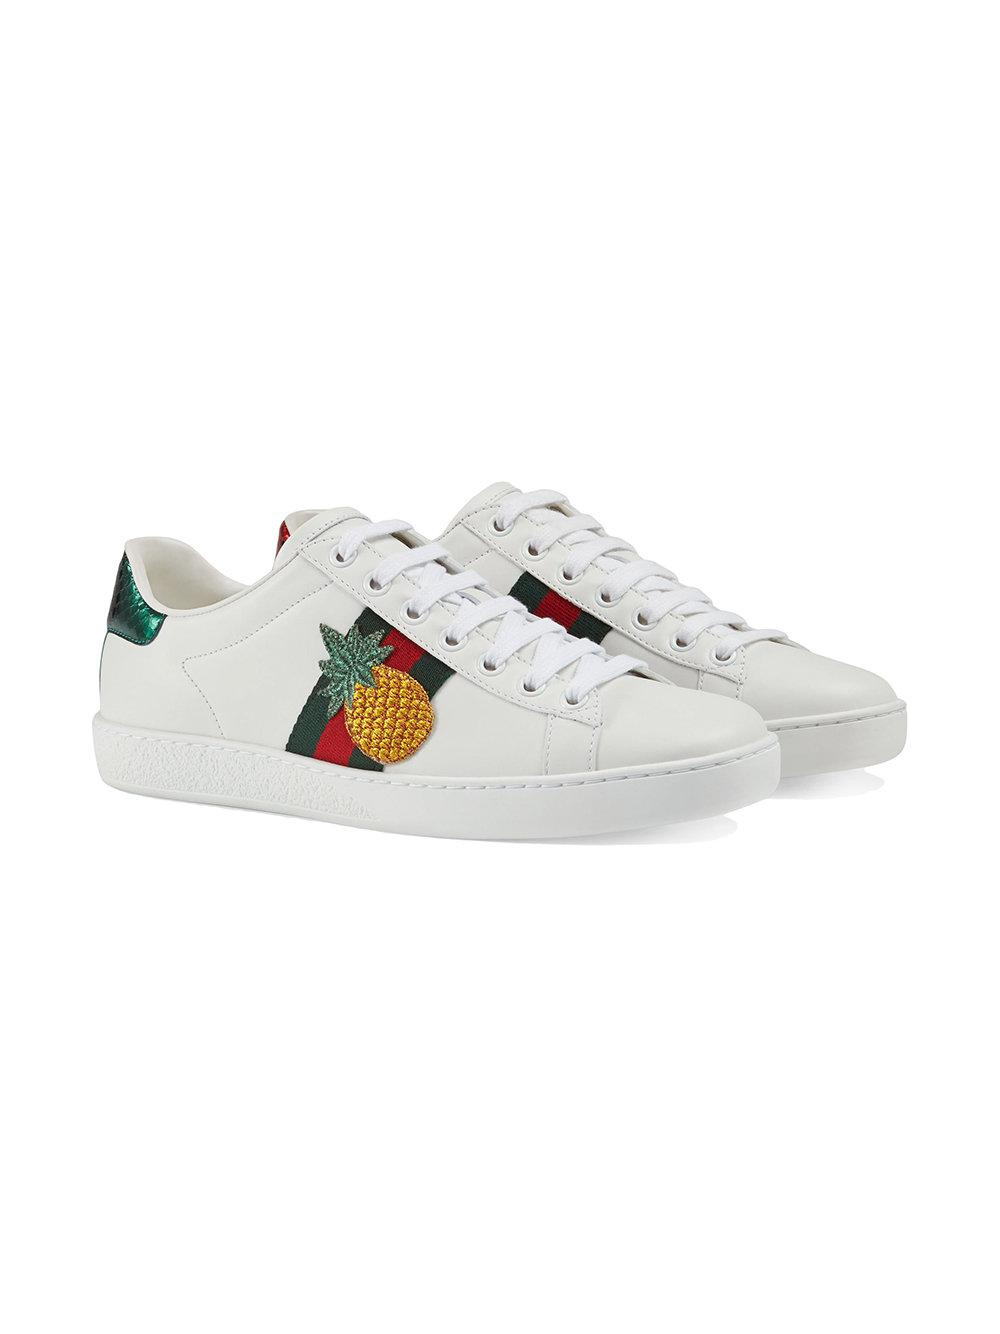 0ea22a14cd4 Lyst - Gucci Ace Embroidered Low-top Sneaker in White